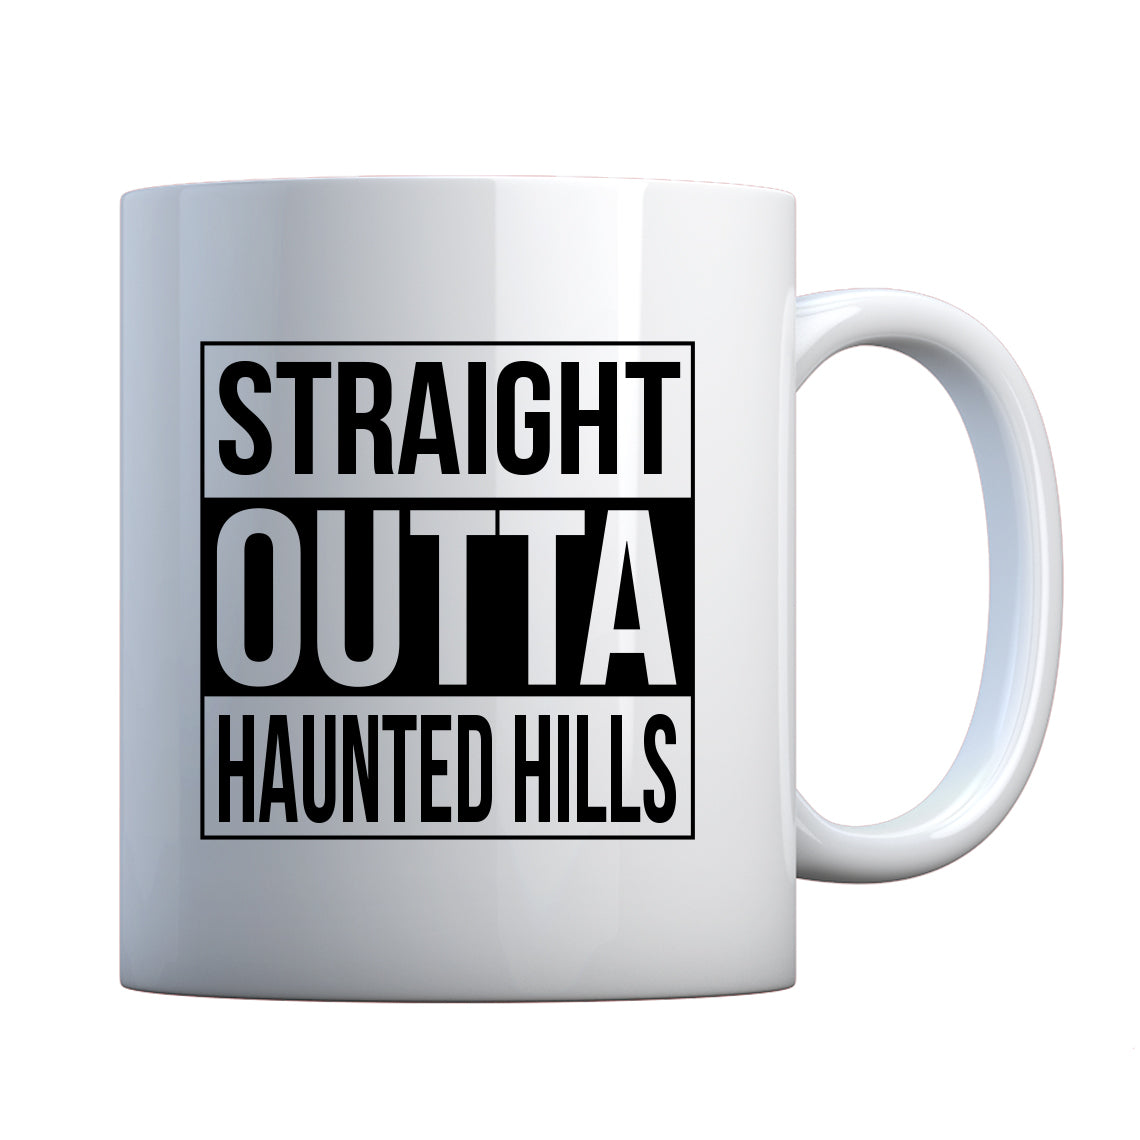 Mug Straight Outta Haunted Hills Ceramic Gift Mug